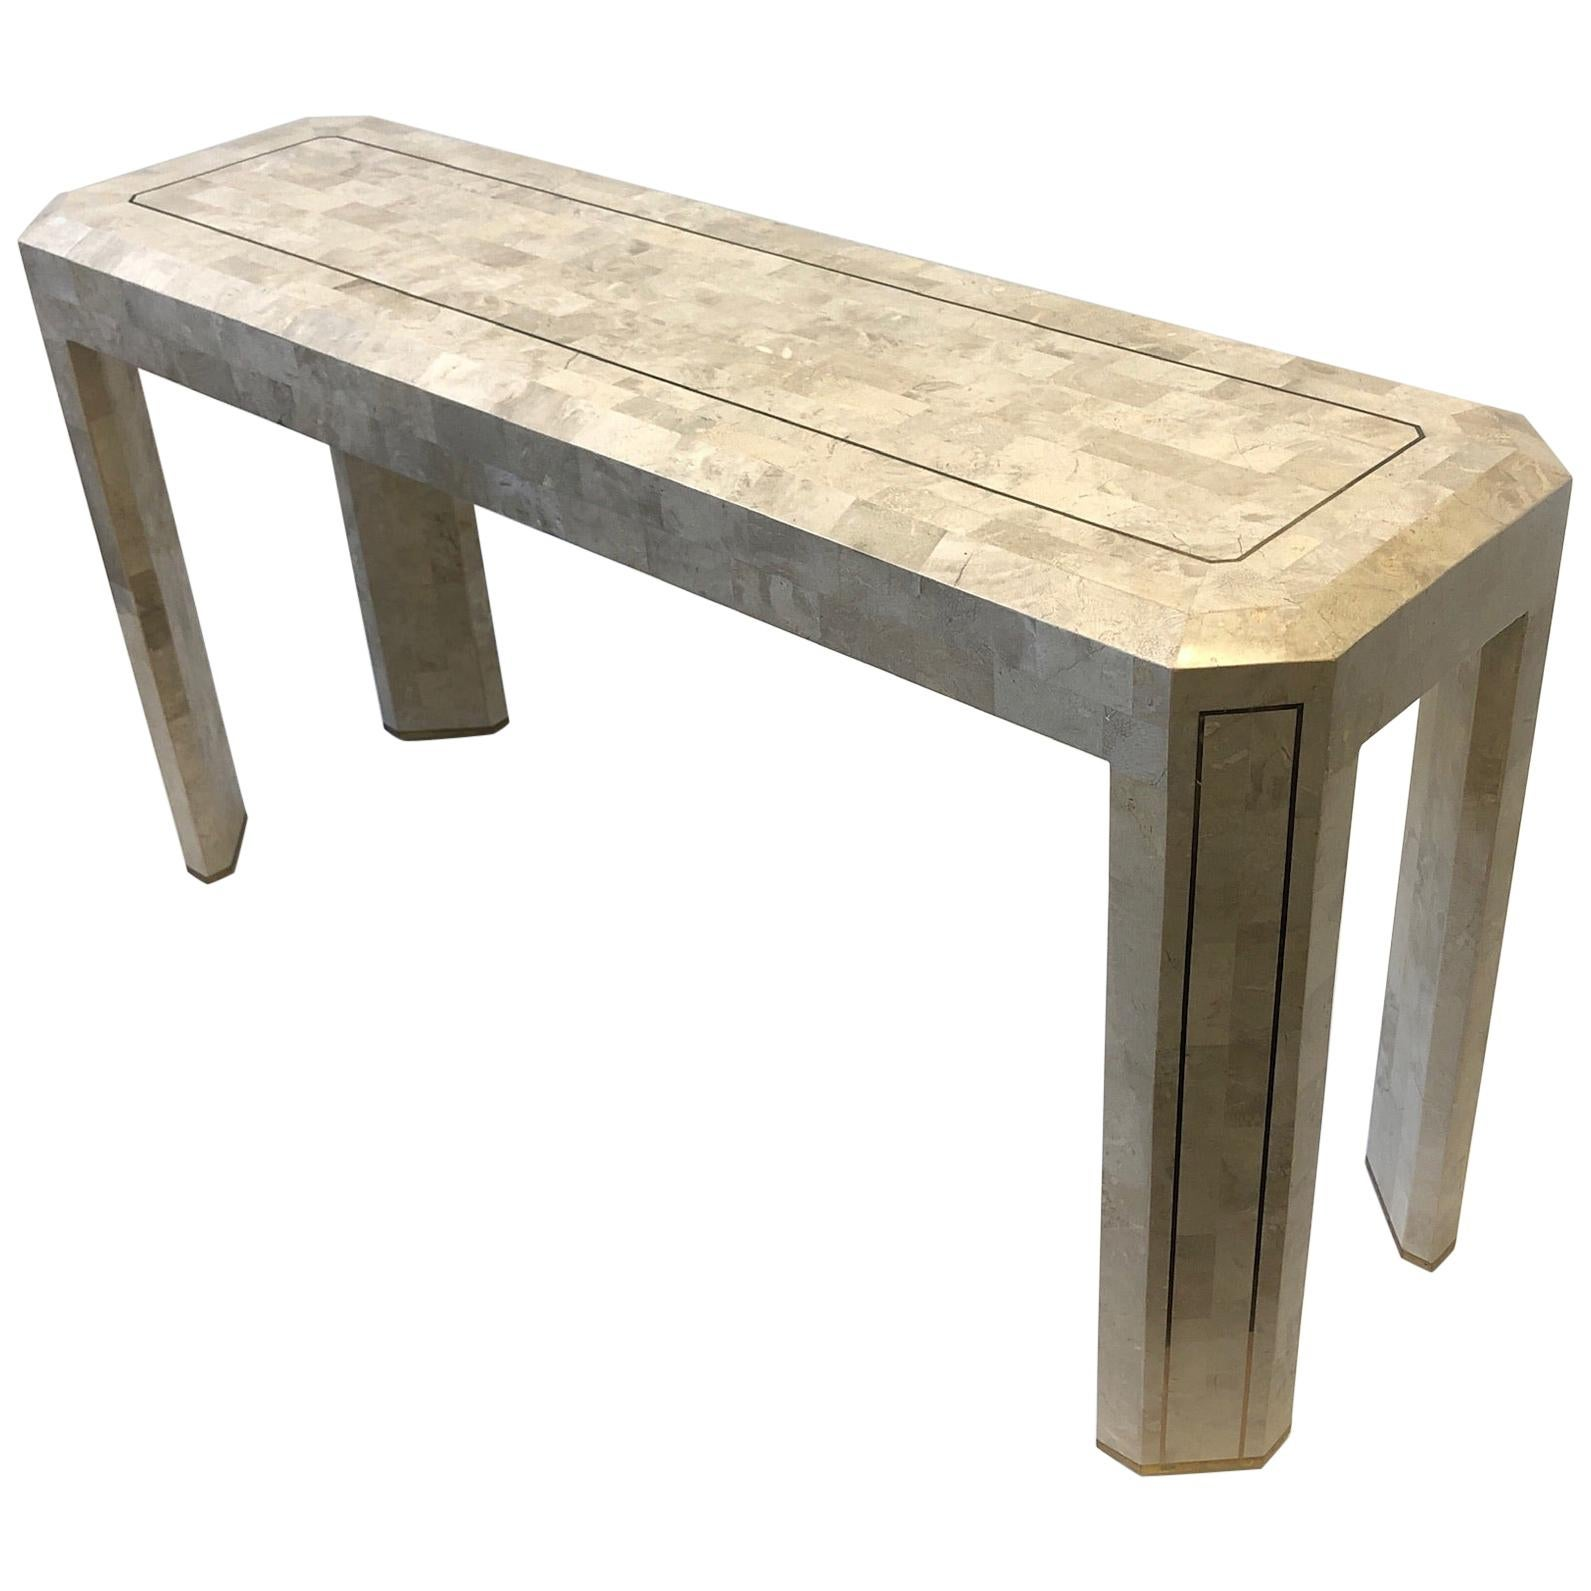 Tessellated Travertine and Inlay Brass Console Table by Maitland Smith